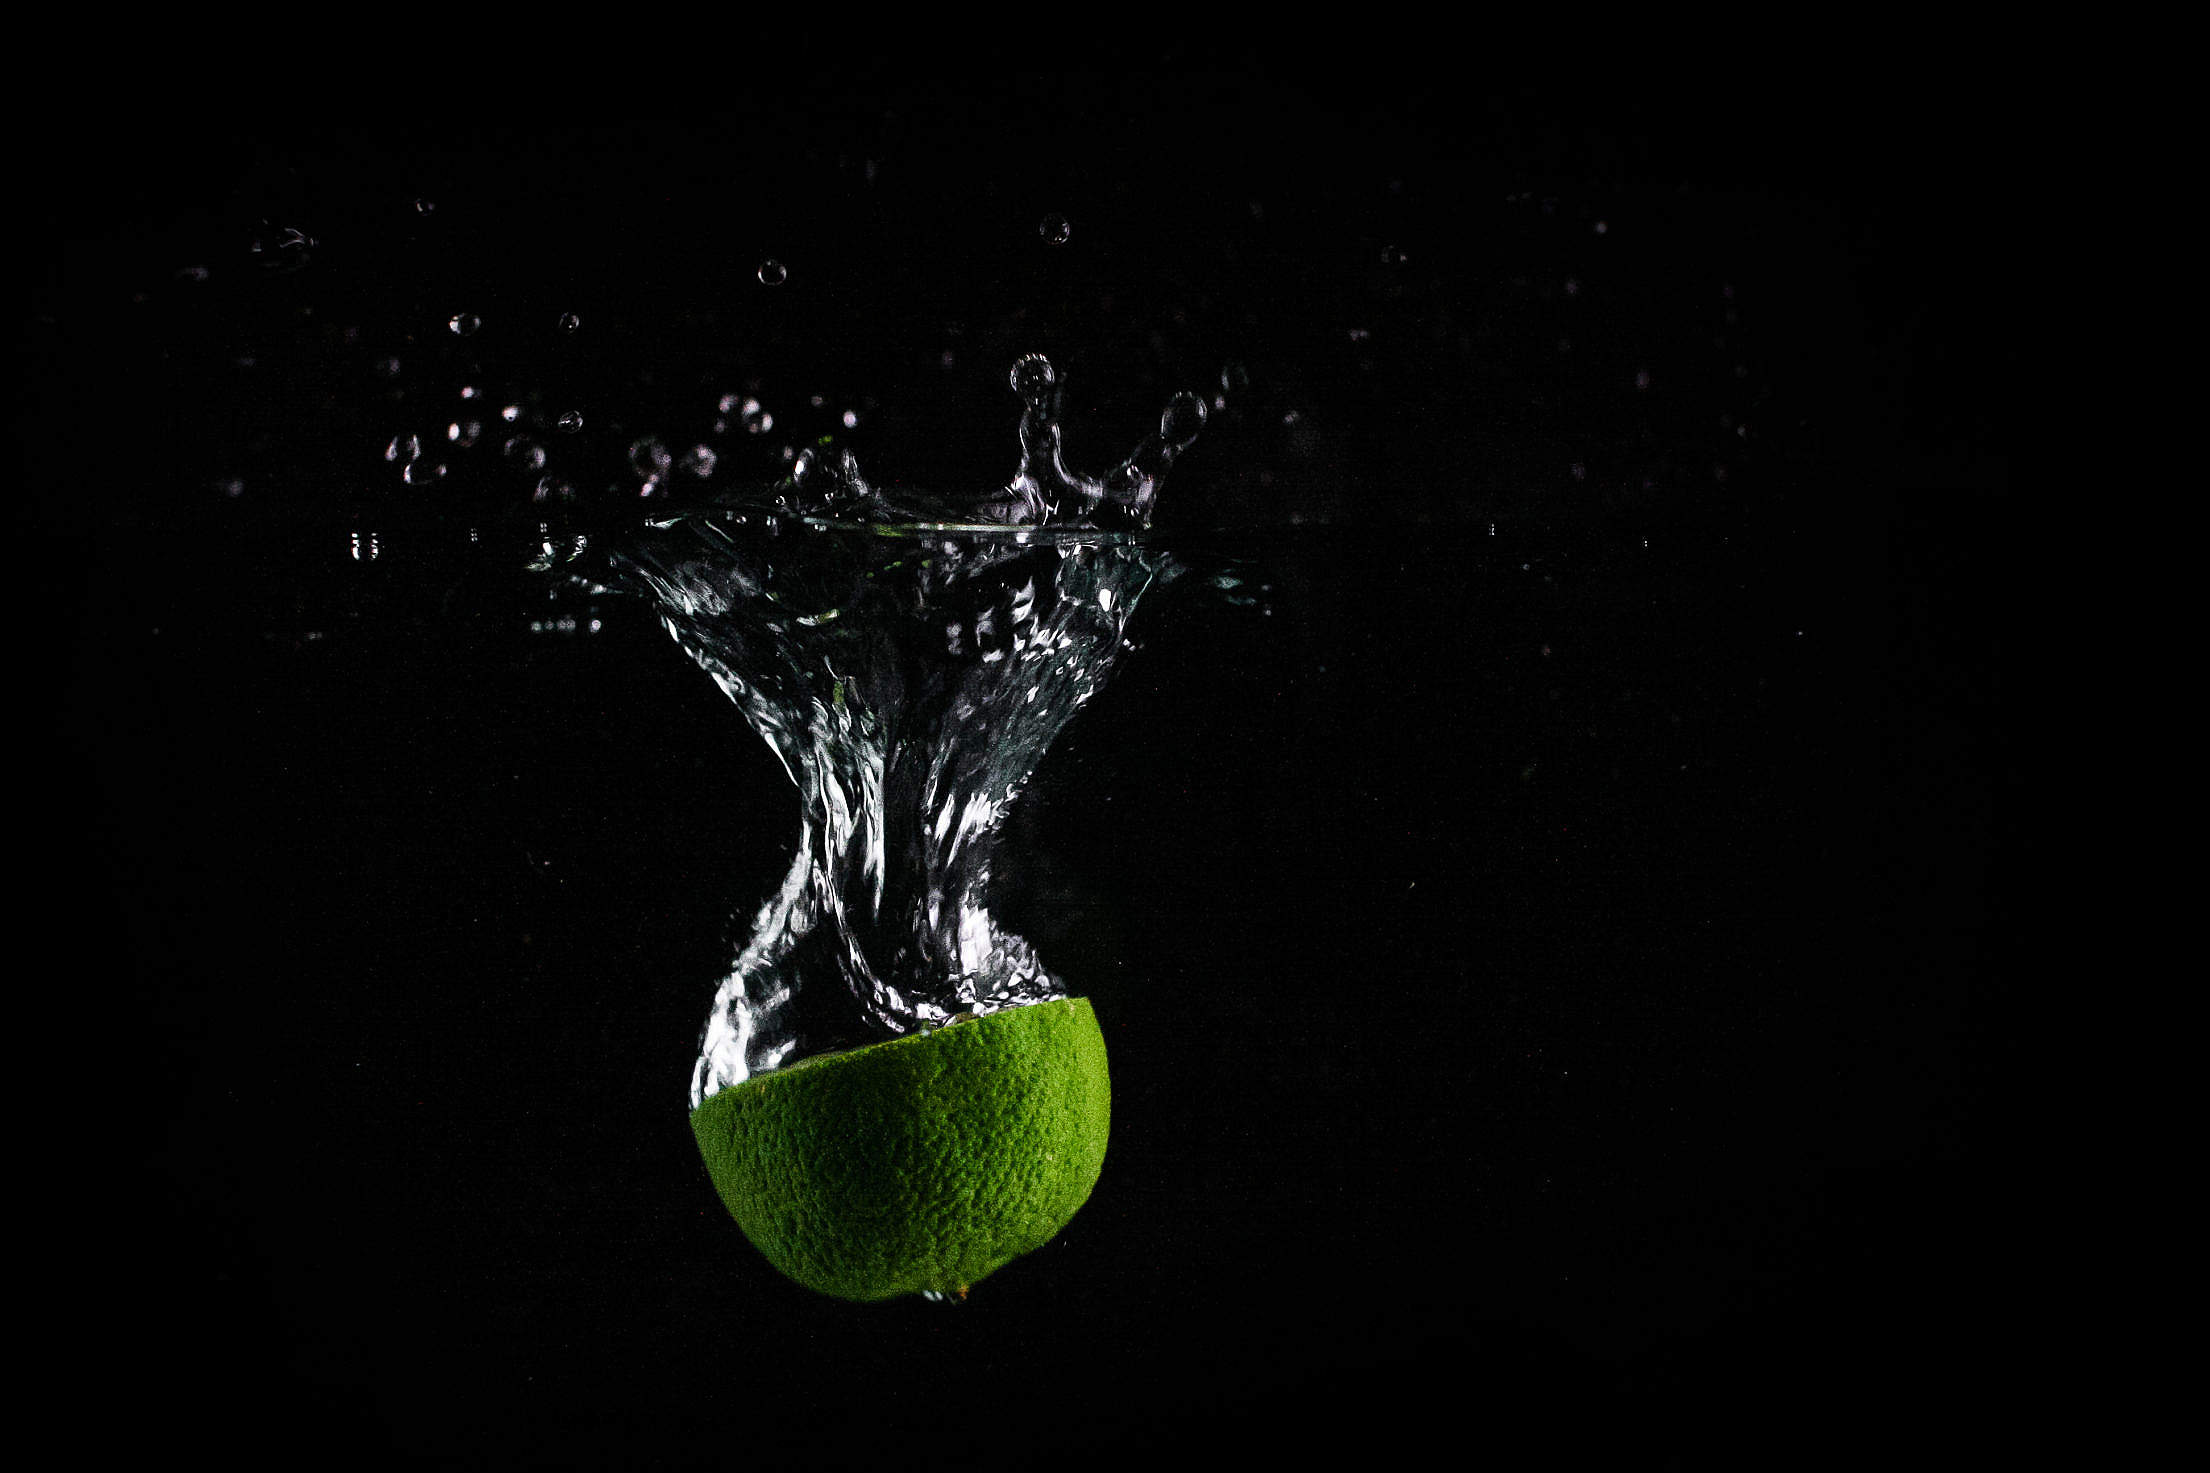 Lime In Water with Black Background Free Stock Photo